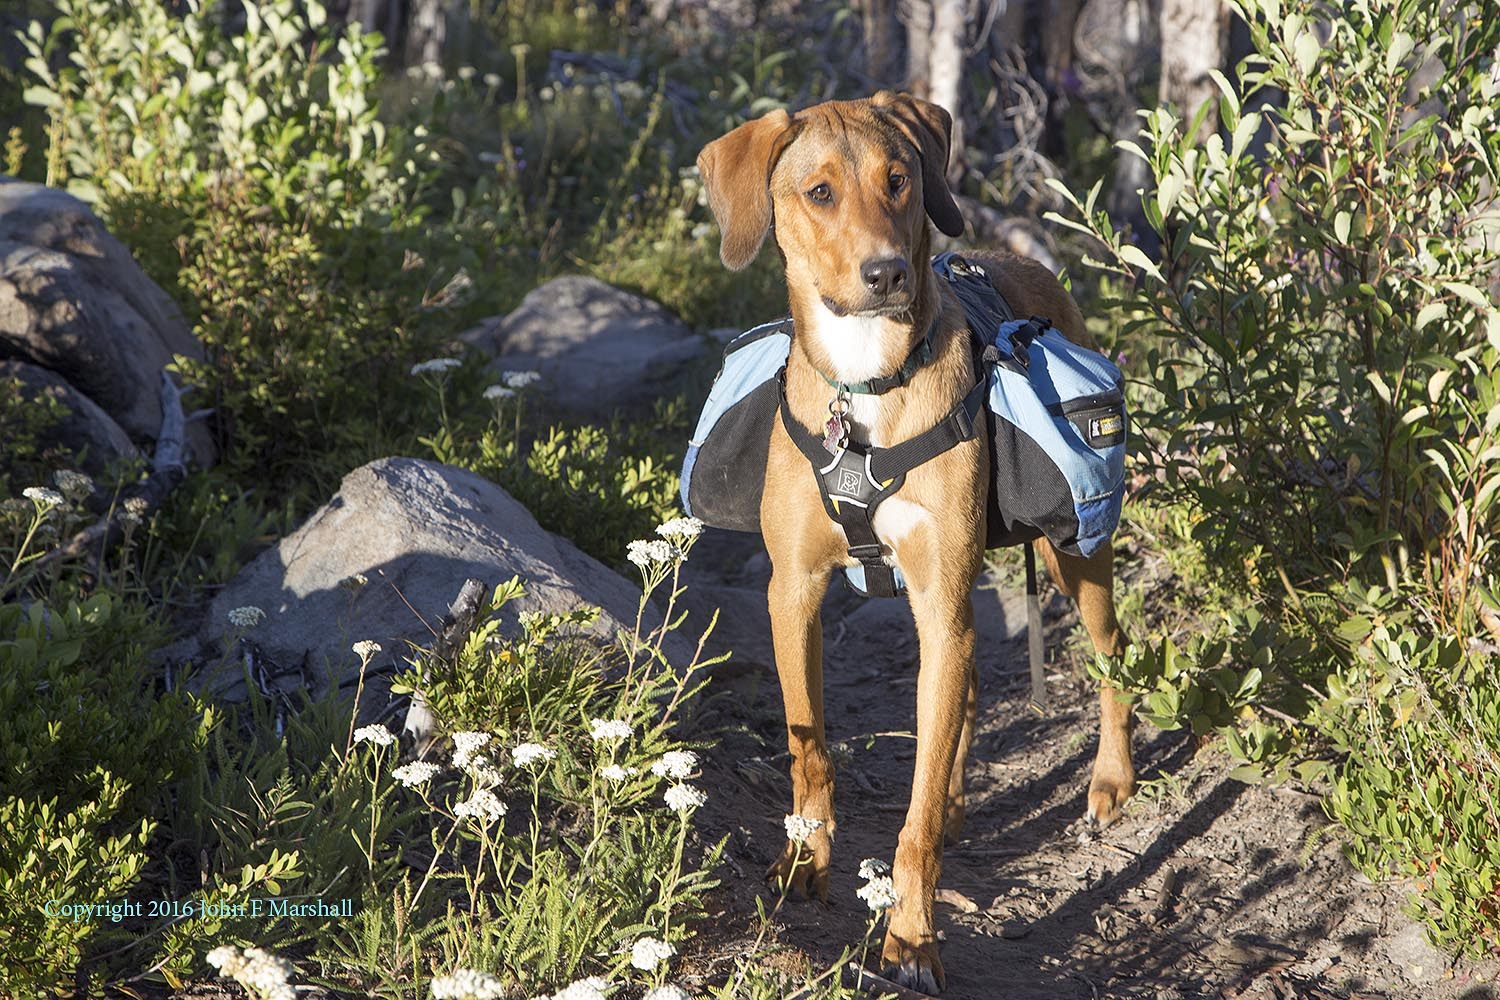 Oberon, our Catahoula Hound Dog puppy was a great addition to the trip.  Nine months old in this picture he carried a light load.  He did great at negotiating all of the logs in the trail. He was very willing to put on the pack, and did not try to take it off.  Good Boy!!